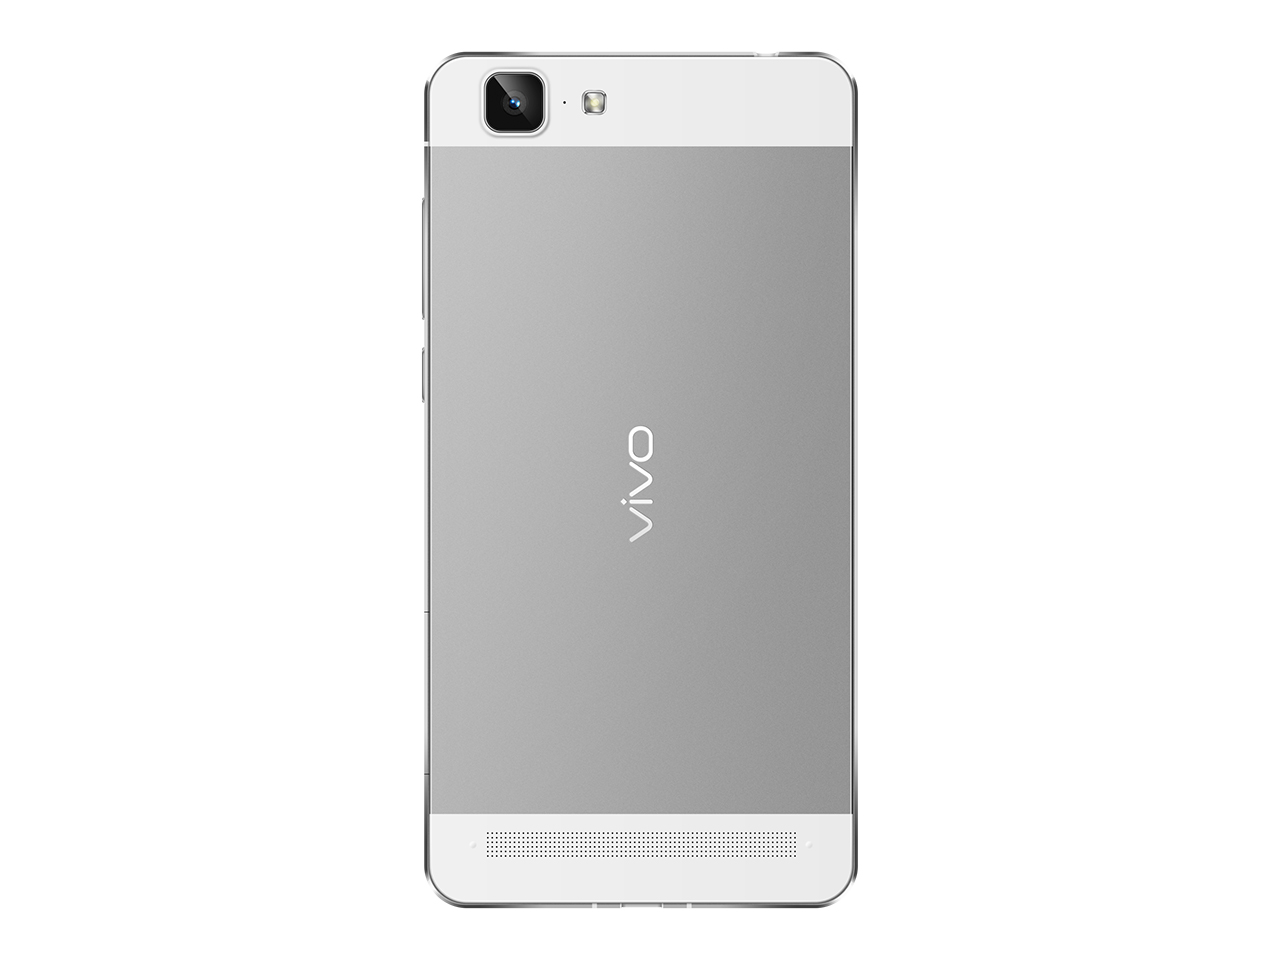 Vivo X5 Max rear view